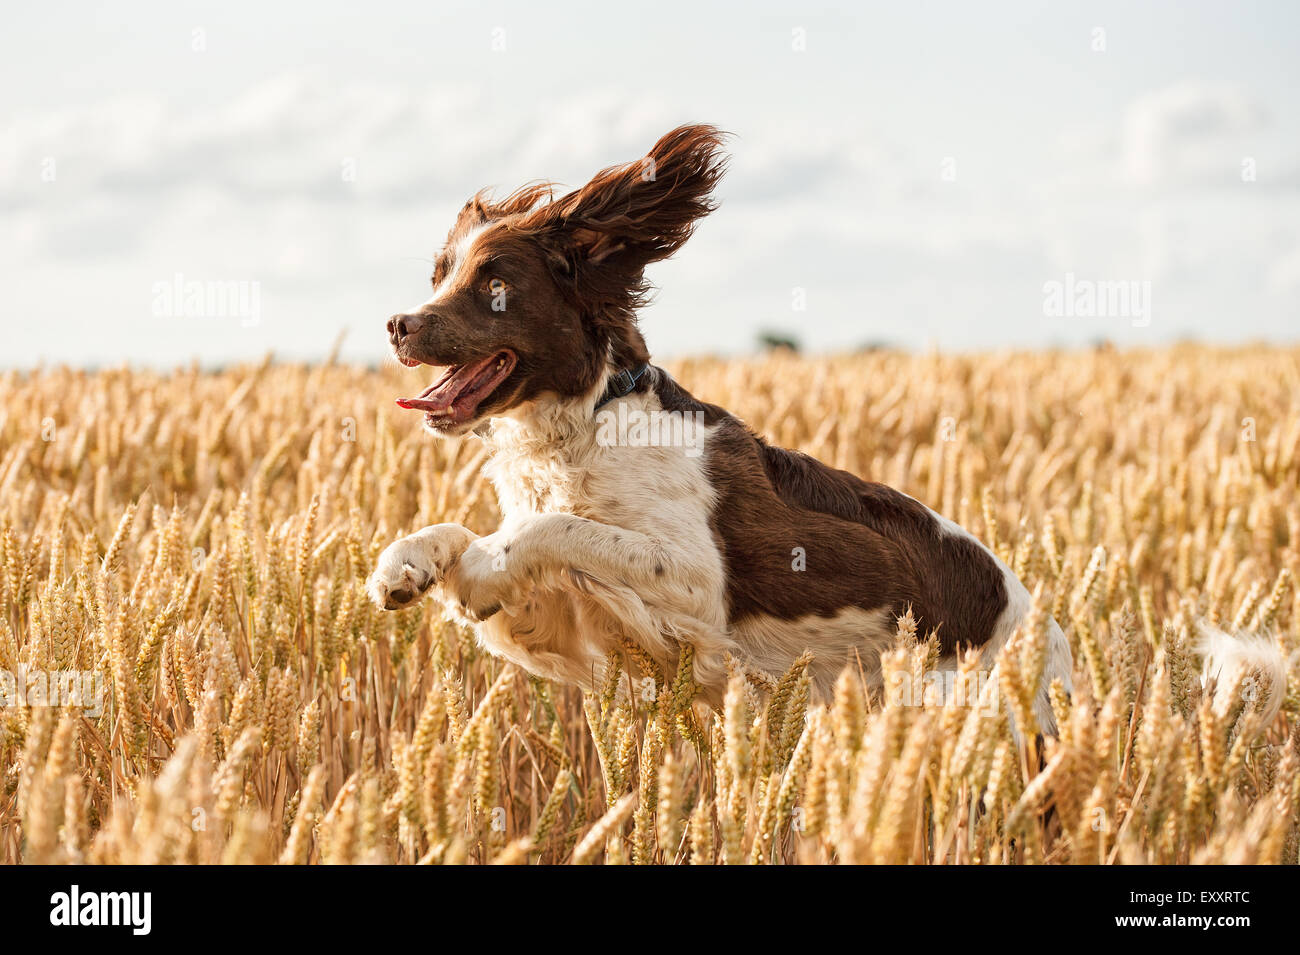 Springer Spaniel Dog in Summer wheat field jumping and leaping having fun - Stock Image